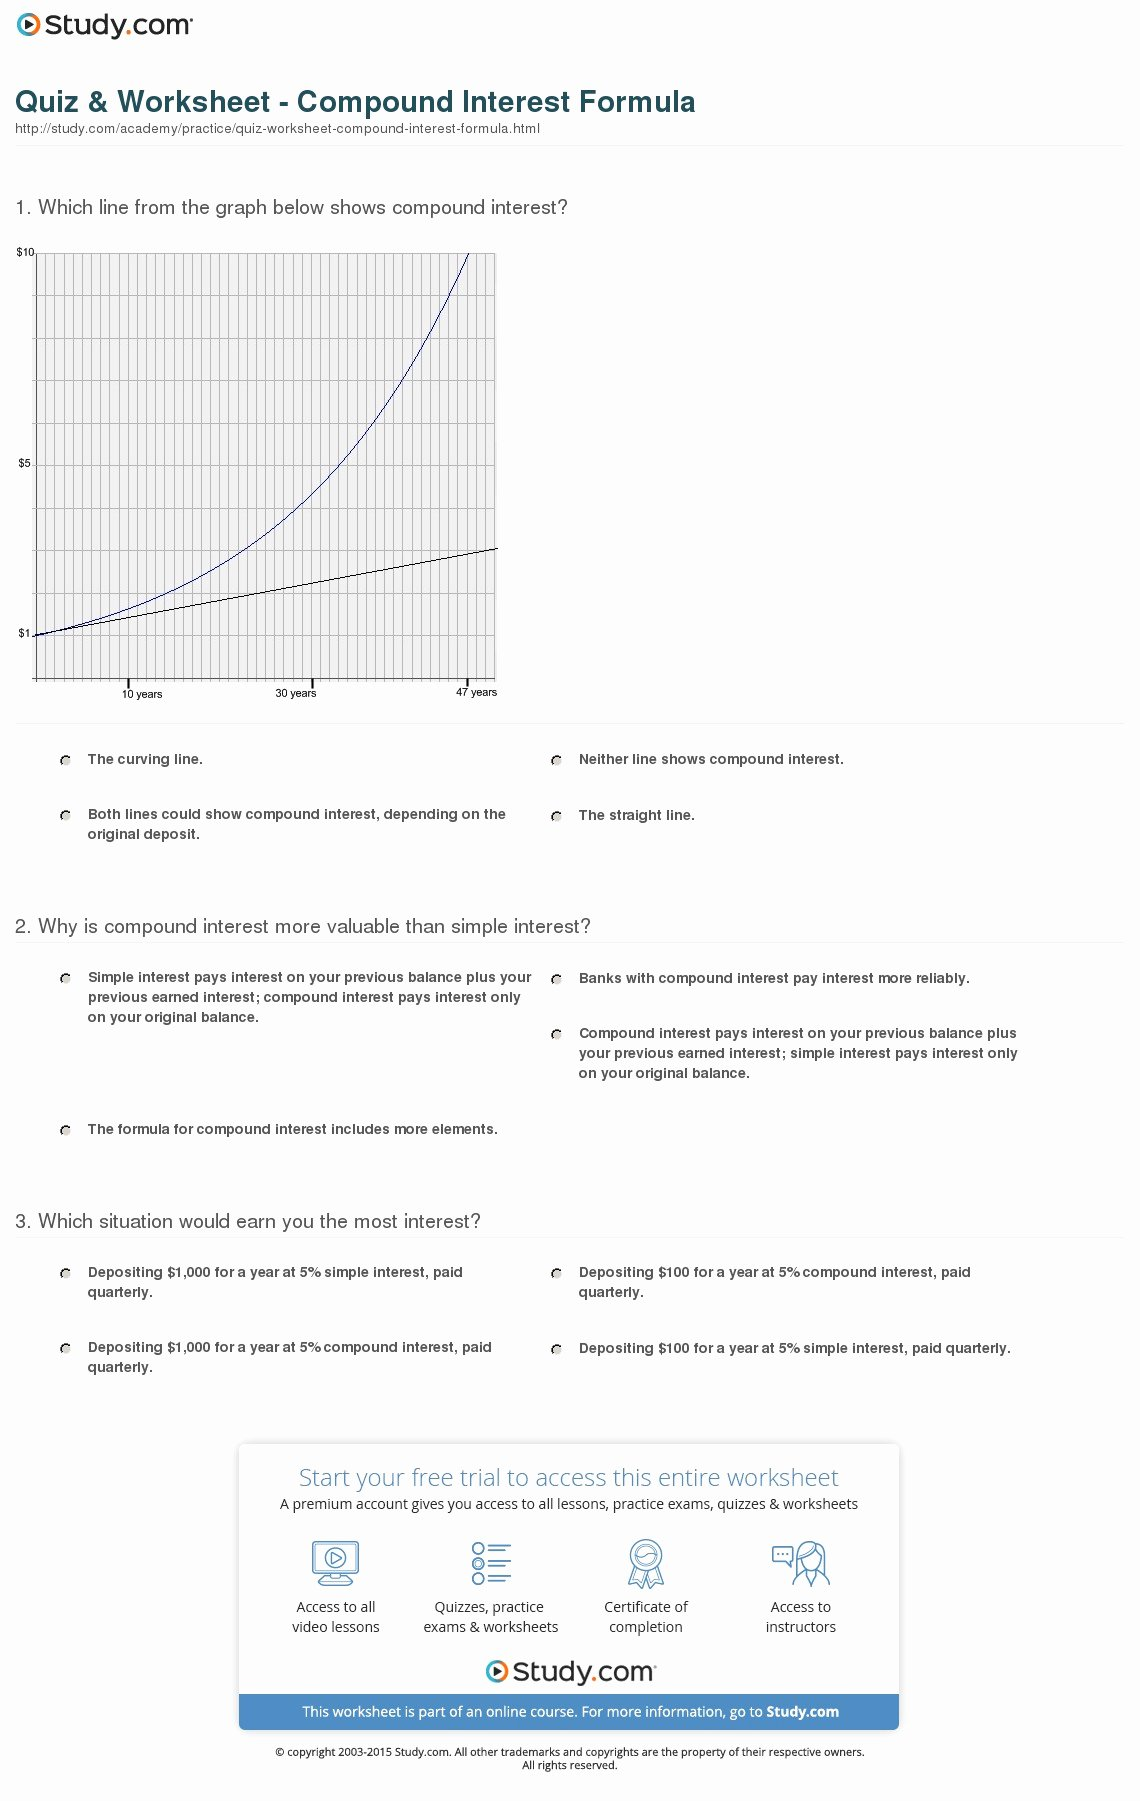 Compound Interest Worksheet Answers Best Of Quiz & Worksheet Pound Interest formula